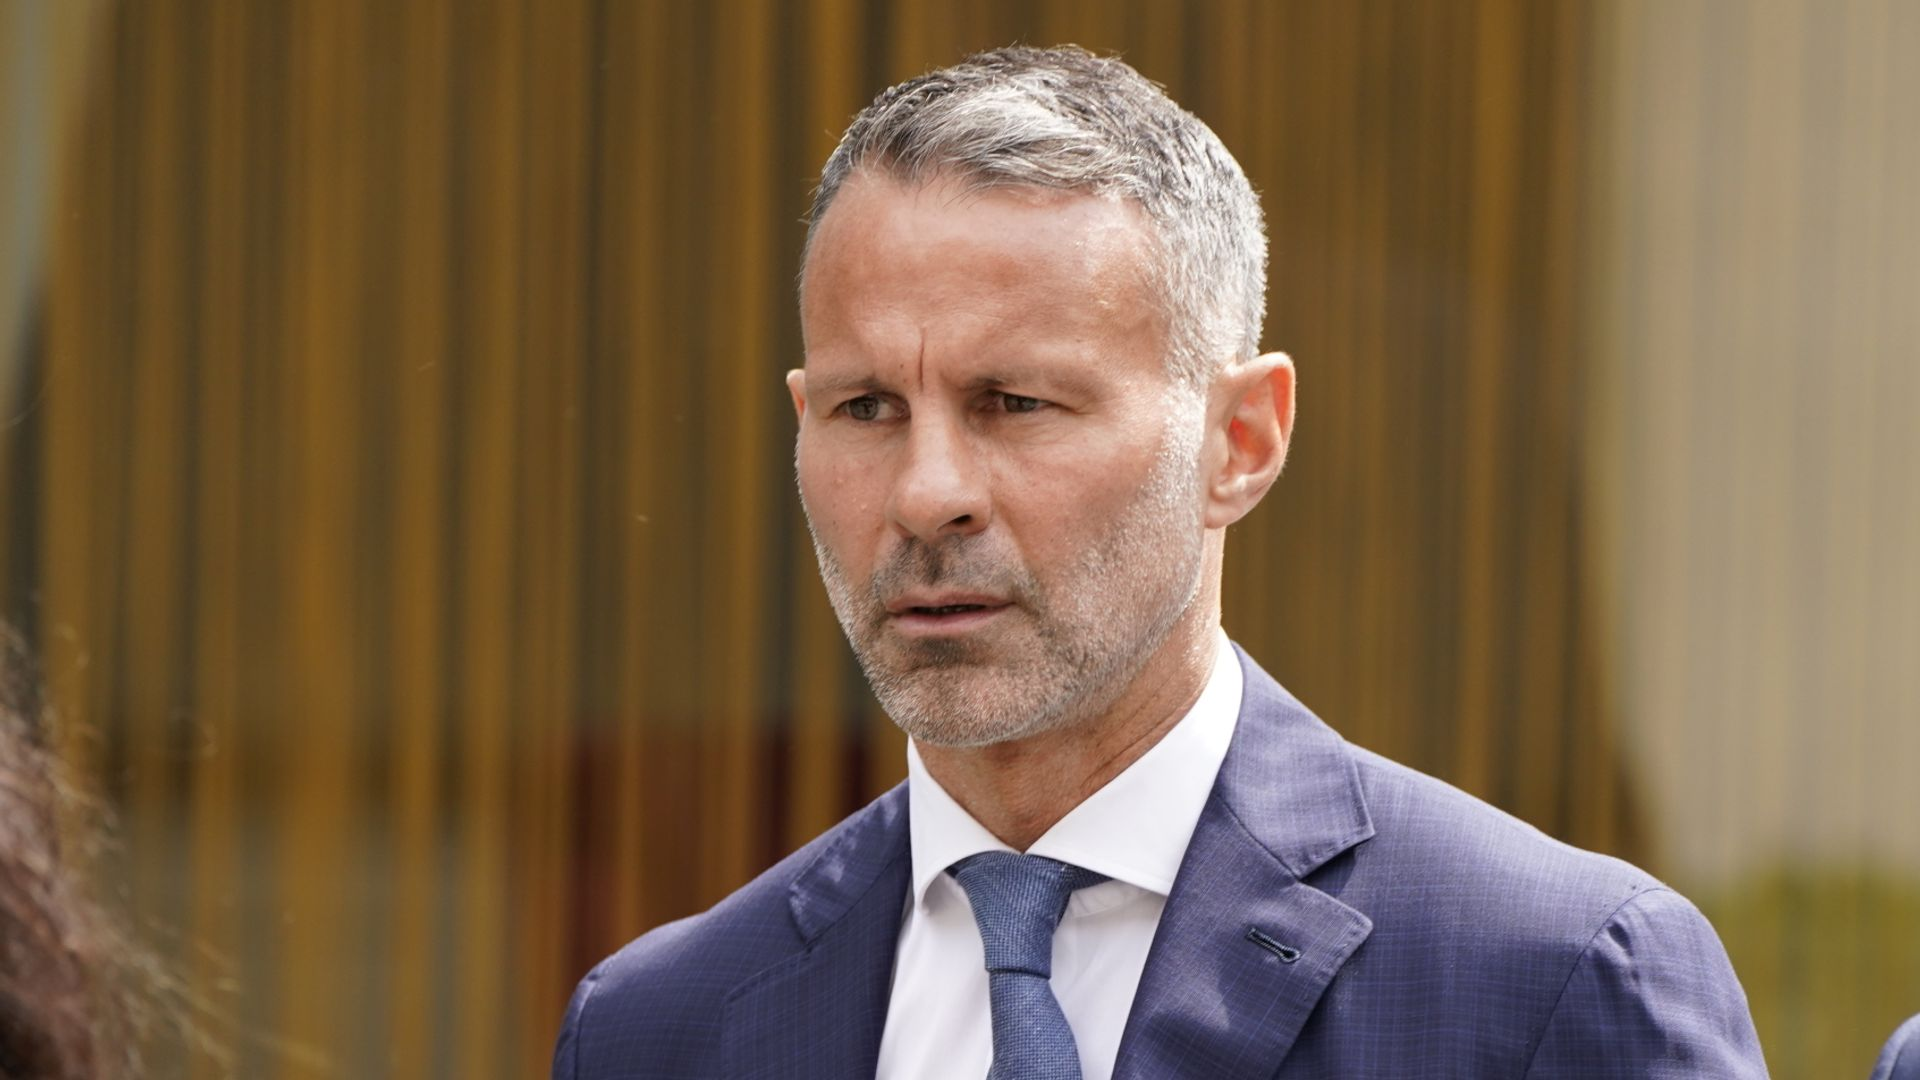 Giggs 'kicked ex in back, threw her out of hotel room'